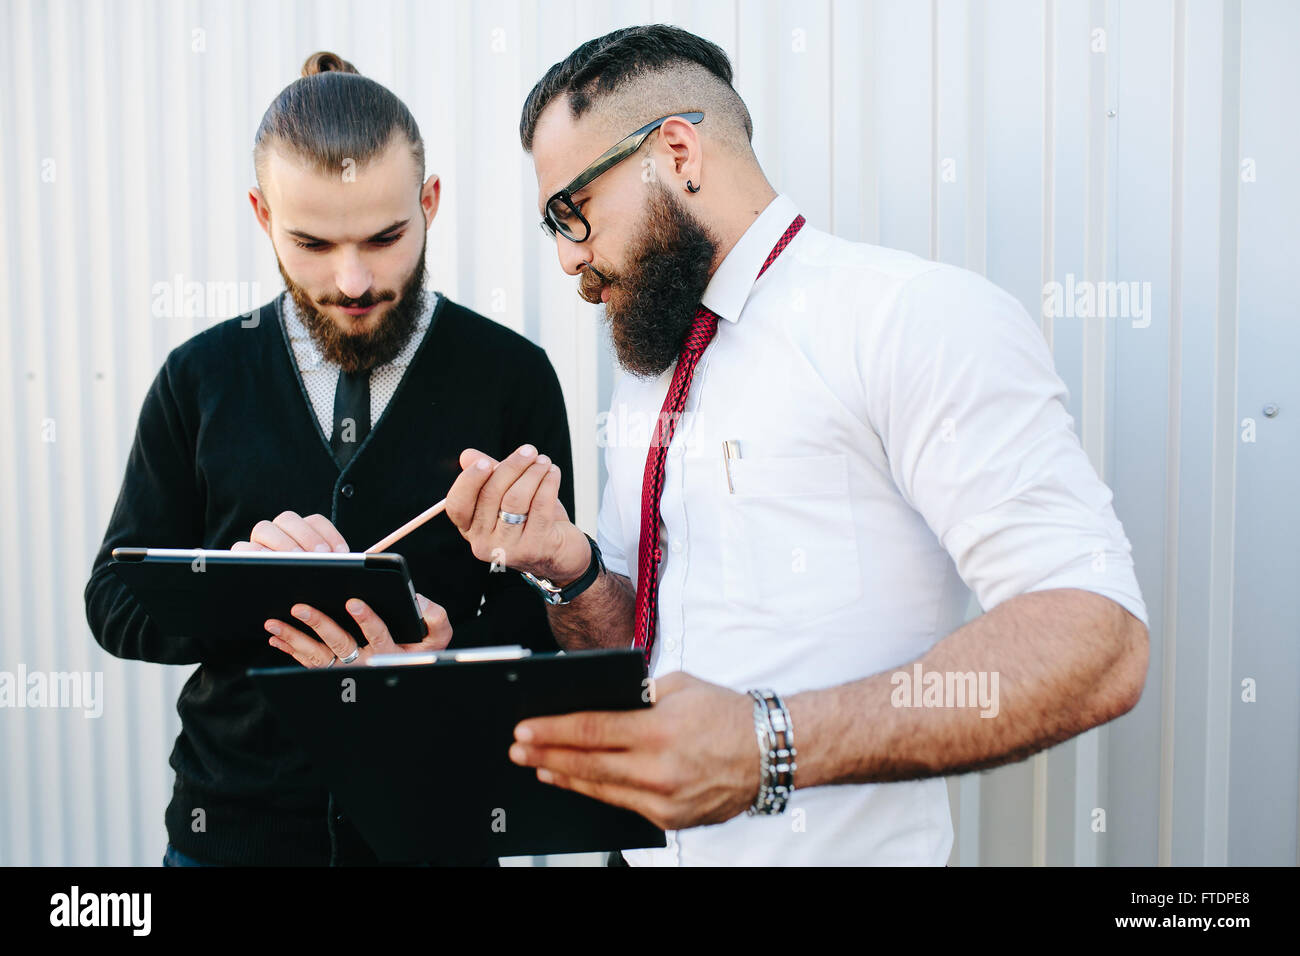 Two businessmen discussing something - Stock Image